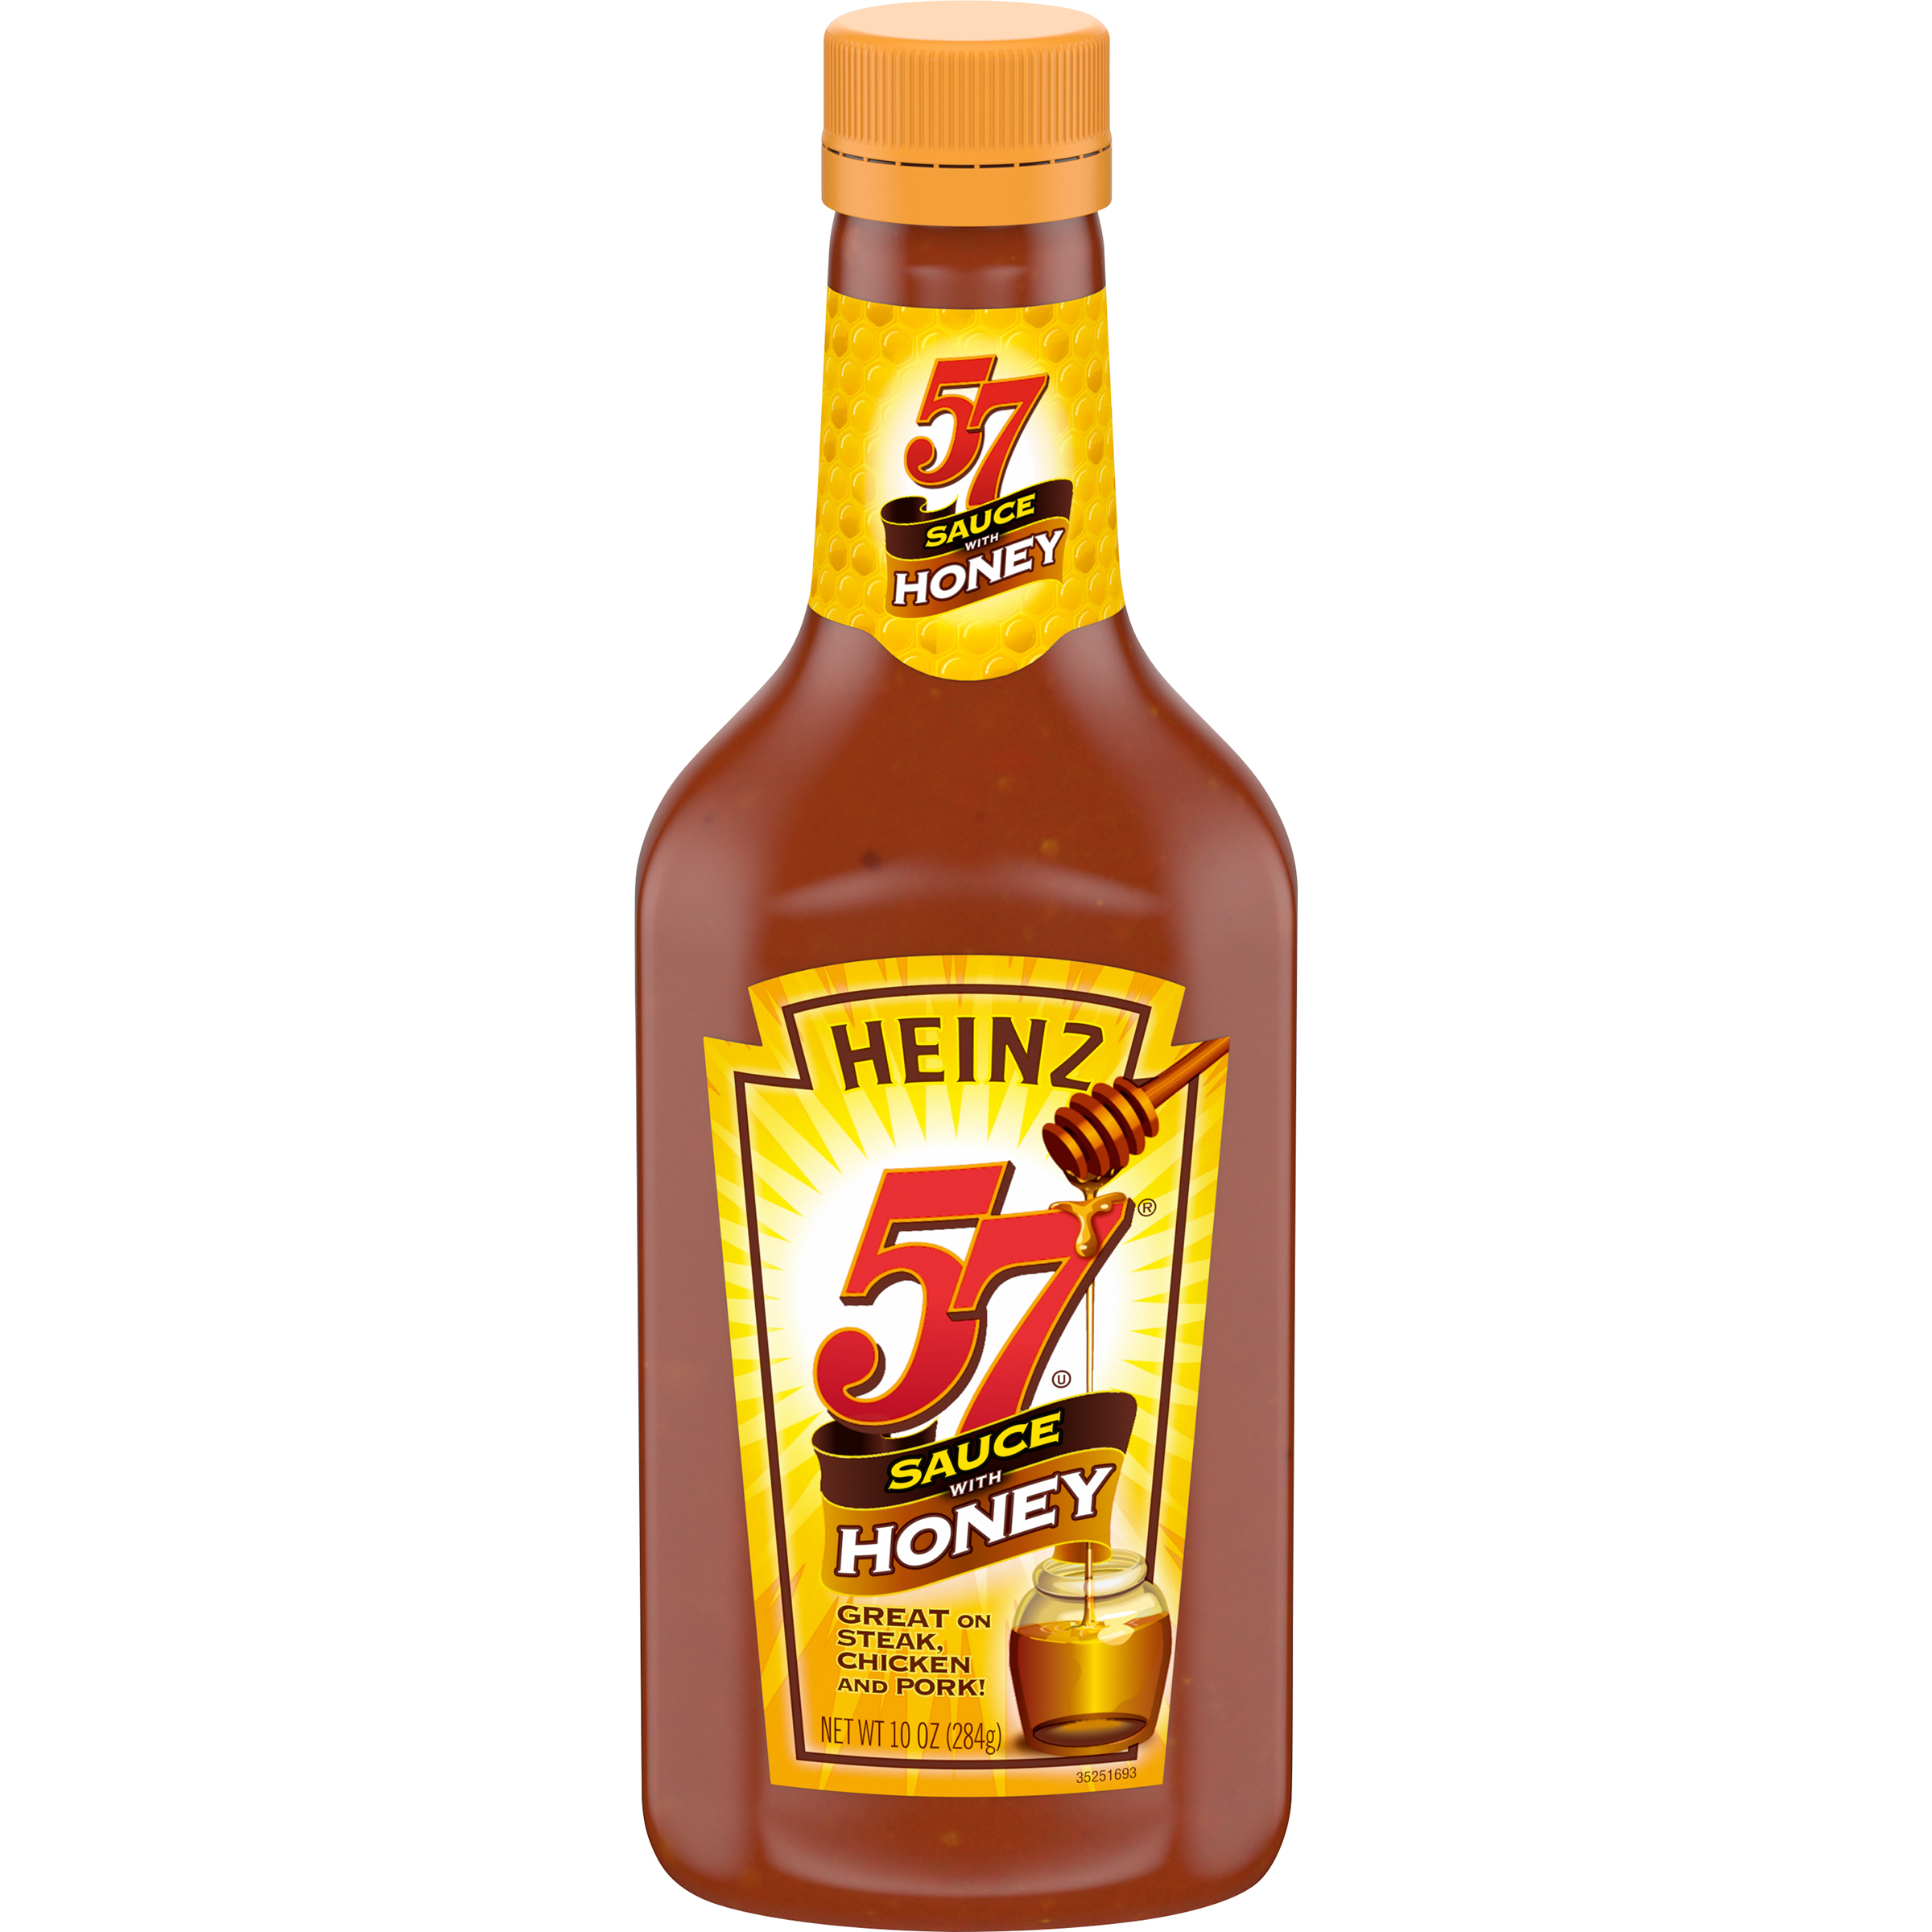 Heinz 57 W/Honey Sauce 10 Oz Bottle image